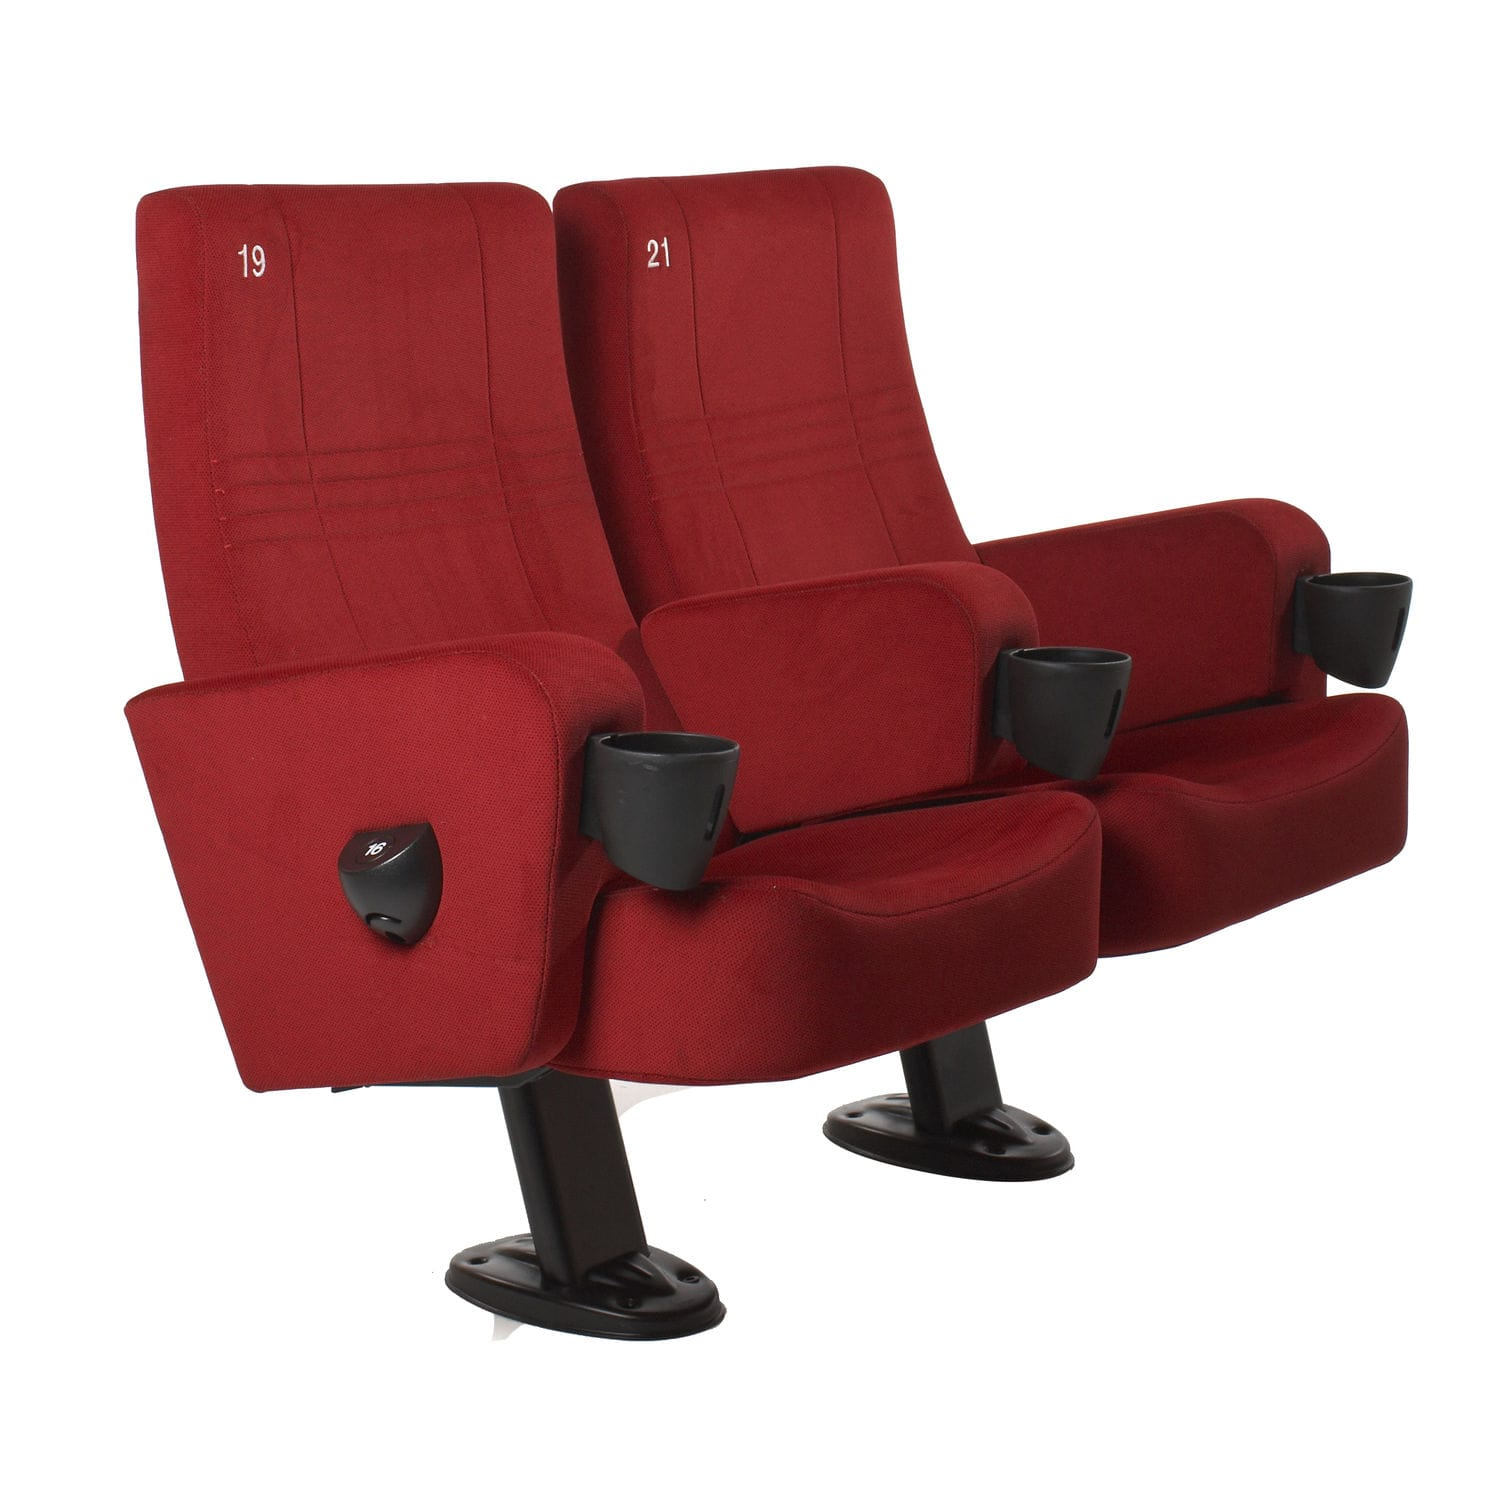 Kinosessel Rot Stoffkinosessel Rot Tempo Ezcaray International Seating